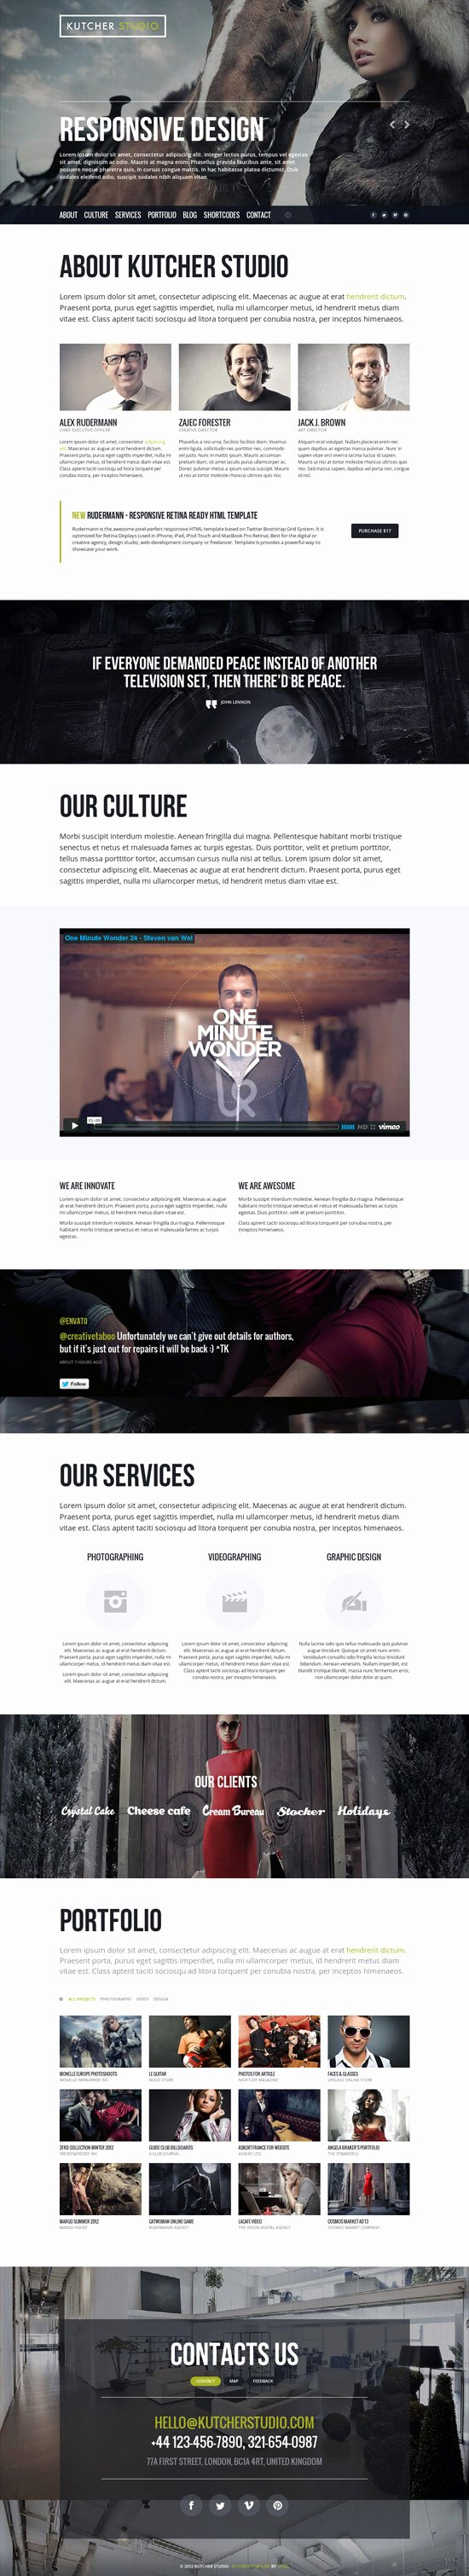 amazing one page parallax scrolling website templates